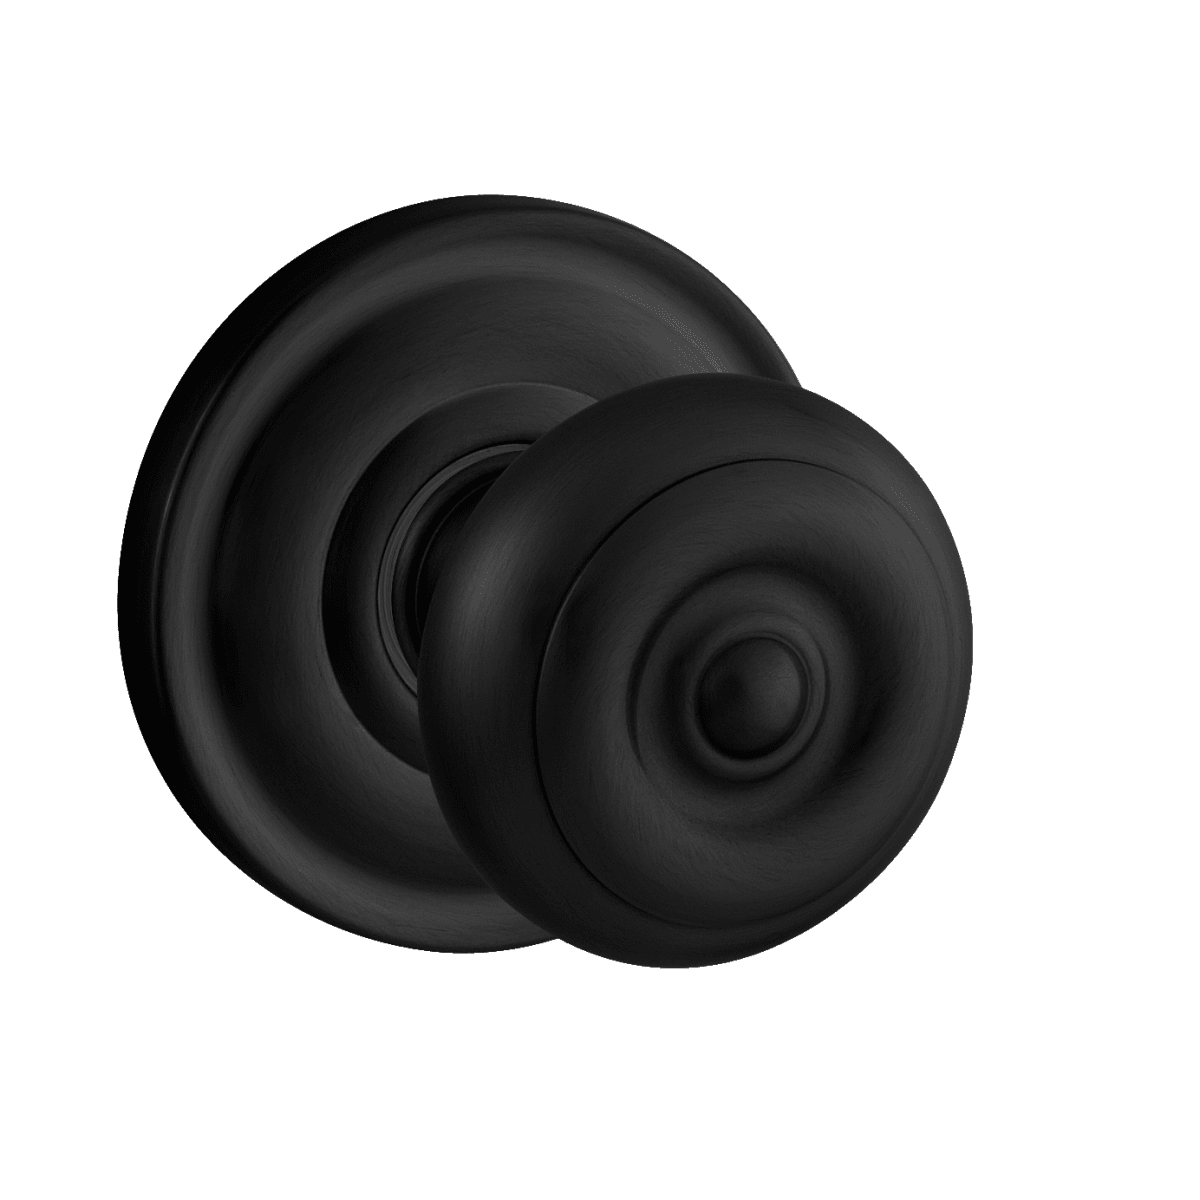 Baldwin 5005 Style Passage Door Knob Set with choice of Medium Rosette from the Estate Collection